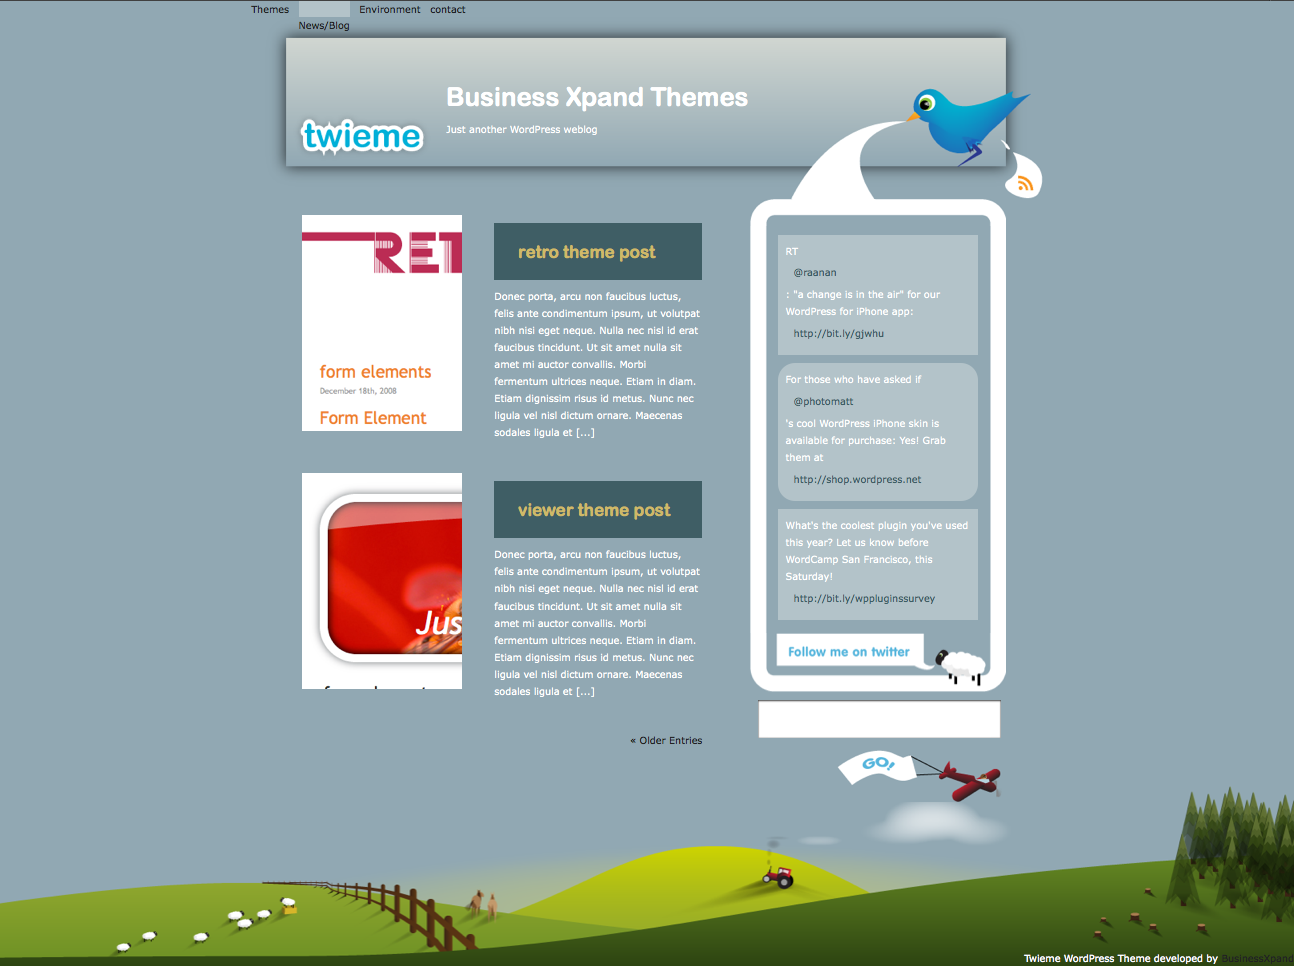 BusinessXpand_twieme screenshot